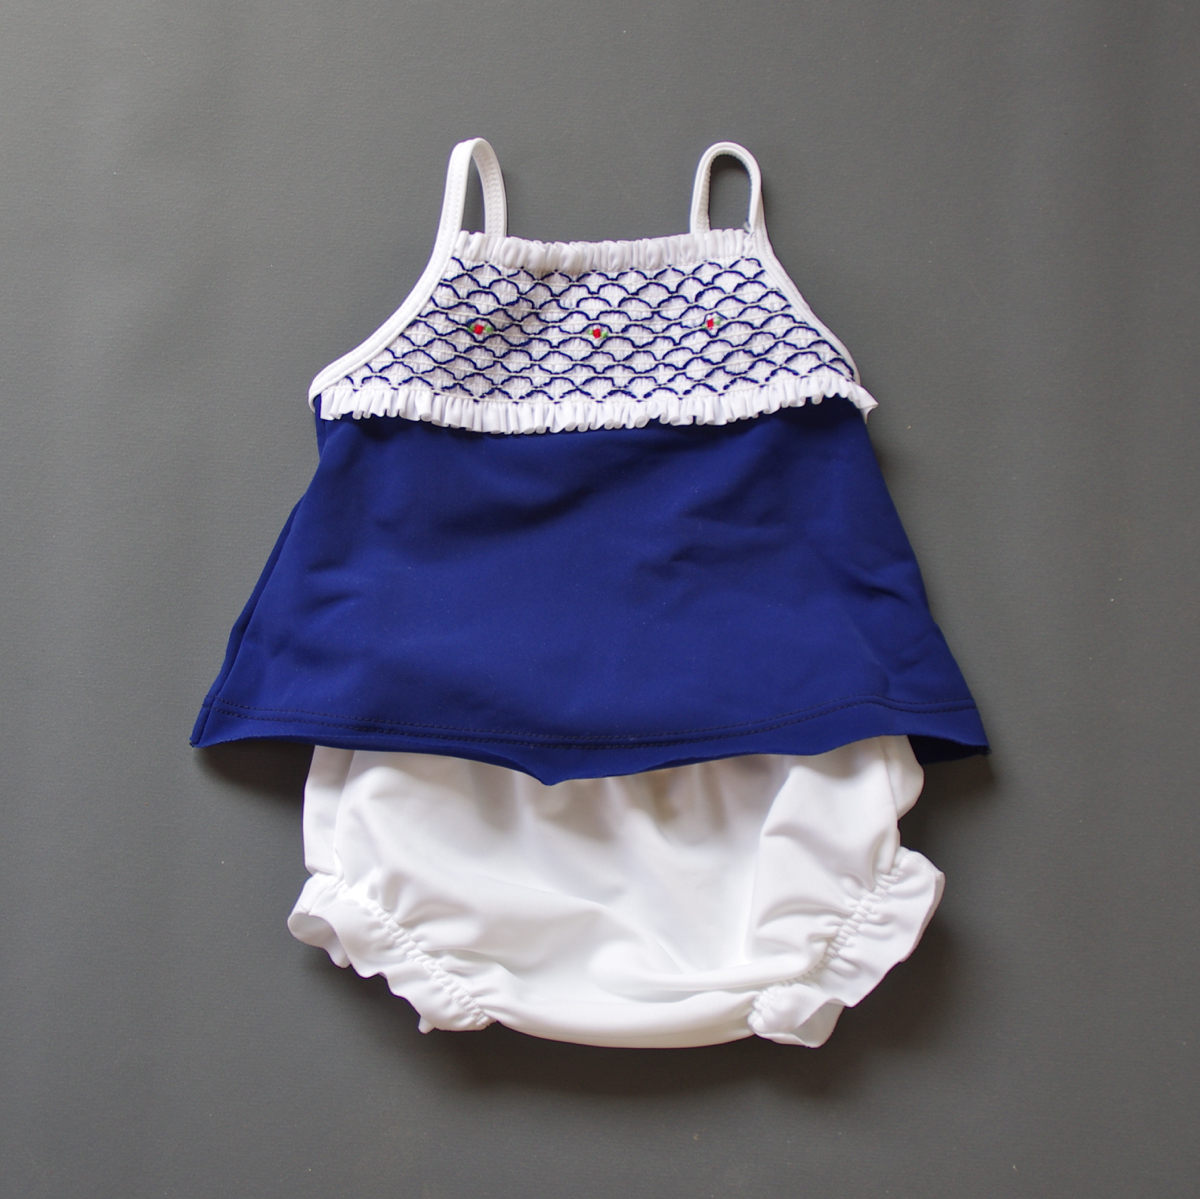 Pepe&Nika PepeandNika Little Apparel coquito Berlin Babies Girls balloon smock white blue pink summery swimwear beachwear